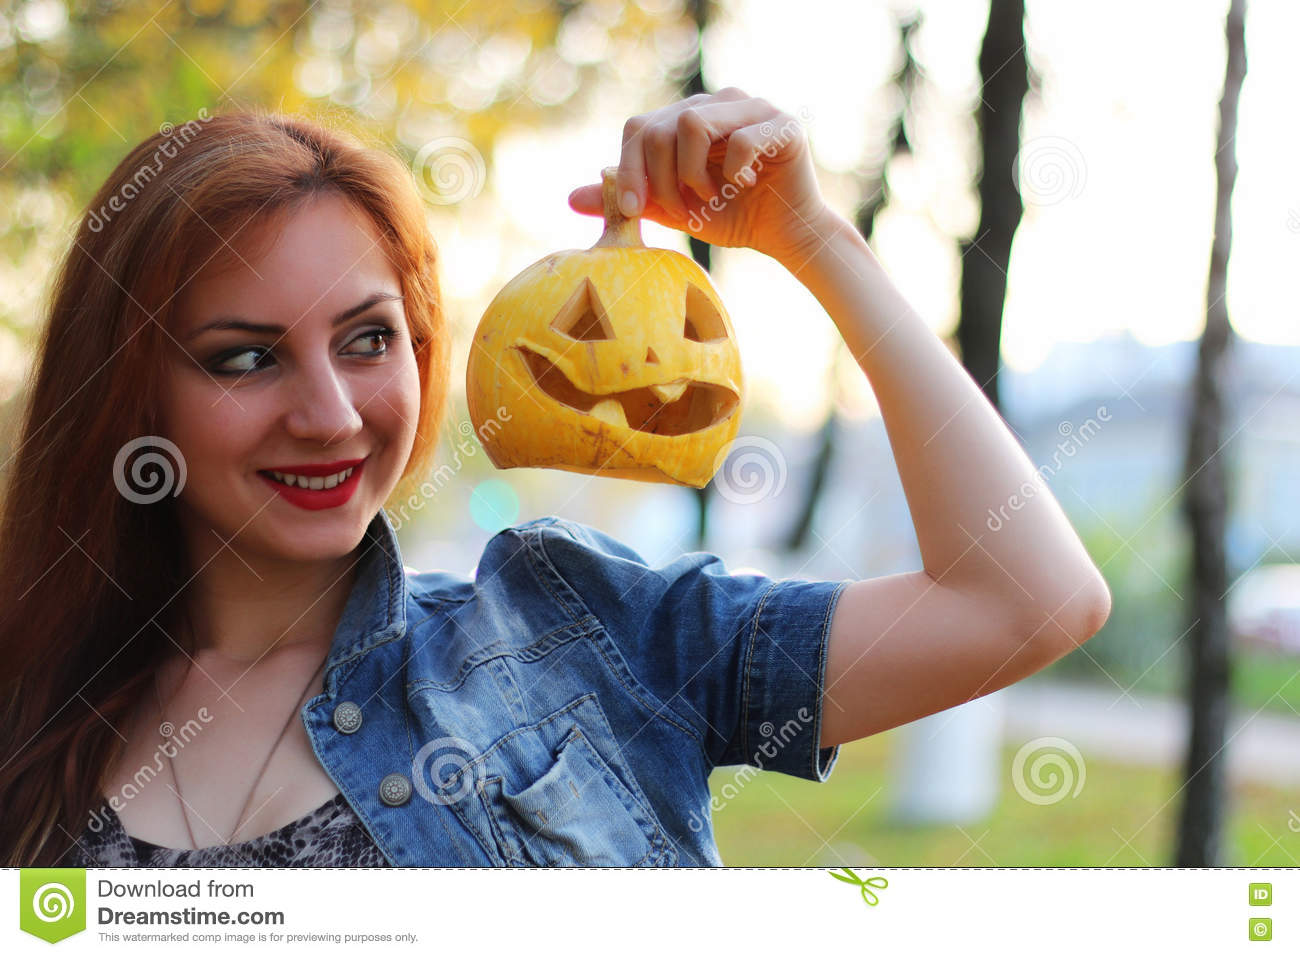 red-haired girl halloween pumpkin stock photo - image of halloween